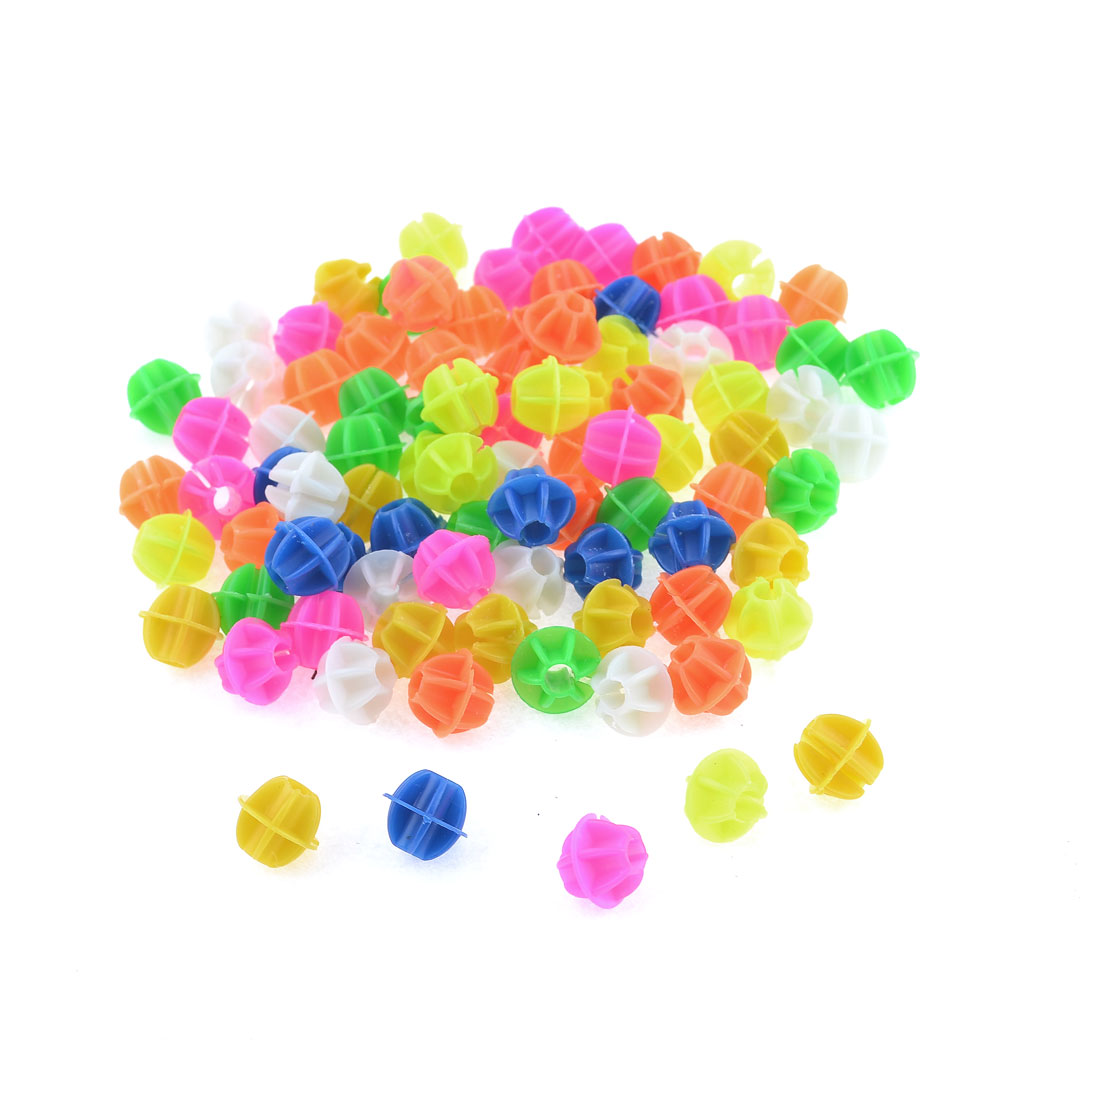 14mm Dia Colorful Plastic Bike Bicycle Spoke Beads Decoration 90 Pcs